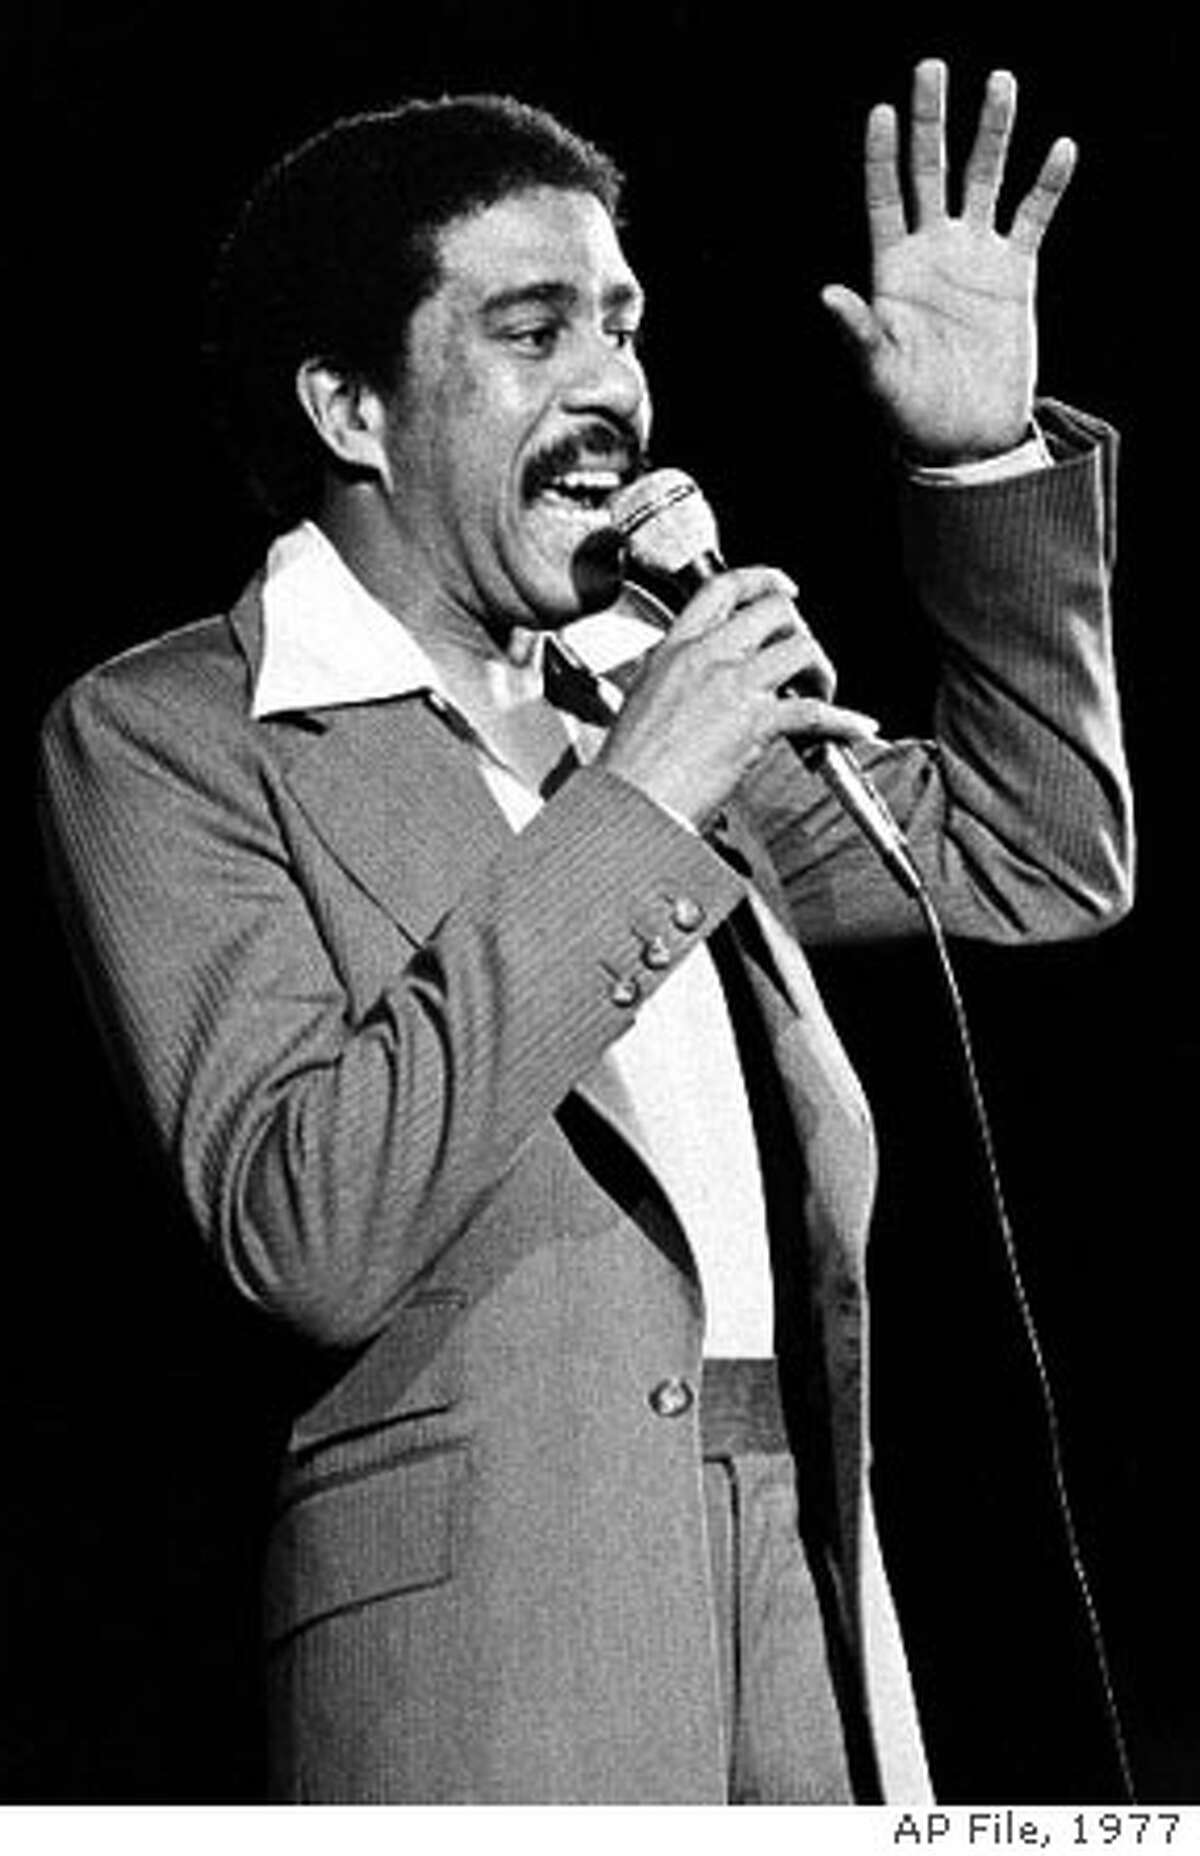 Richard Pryor talked bluntly and worked his own ordeals into his comedy. Associated Press File Photo, 1977